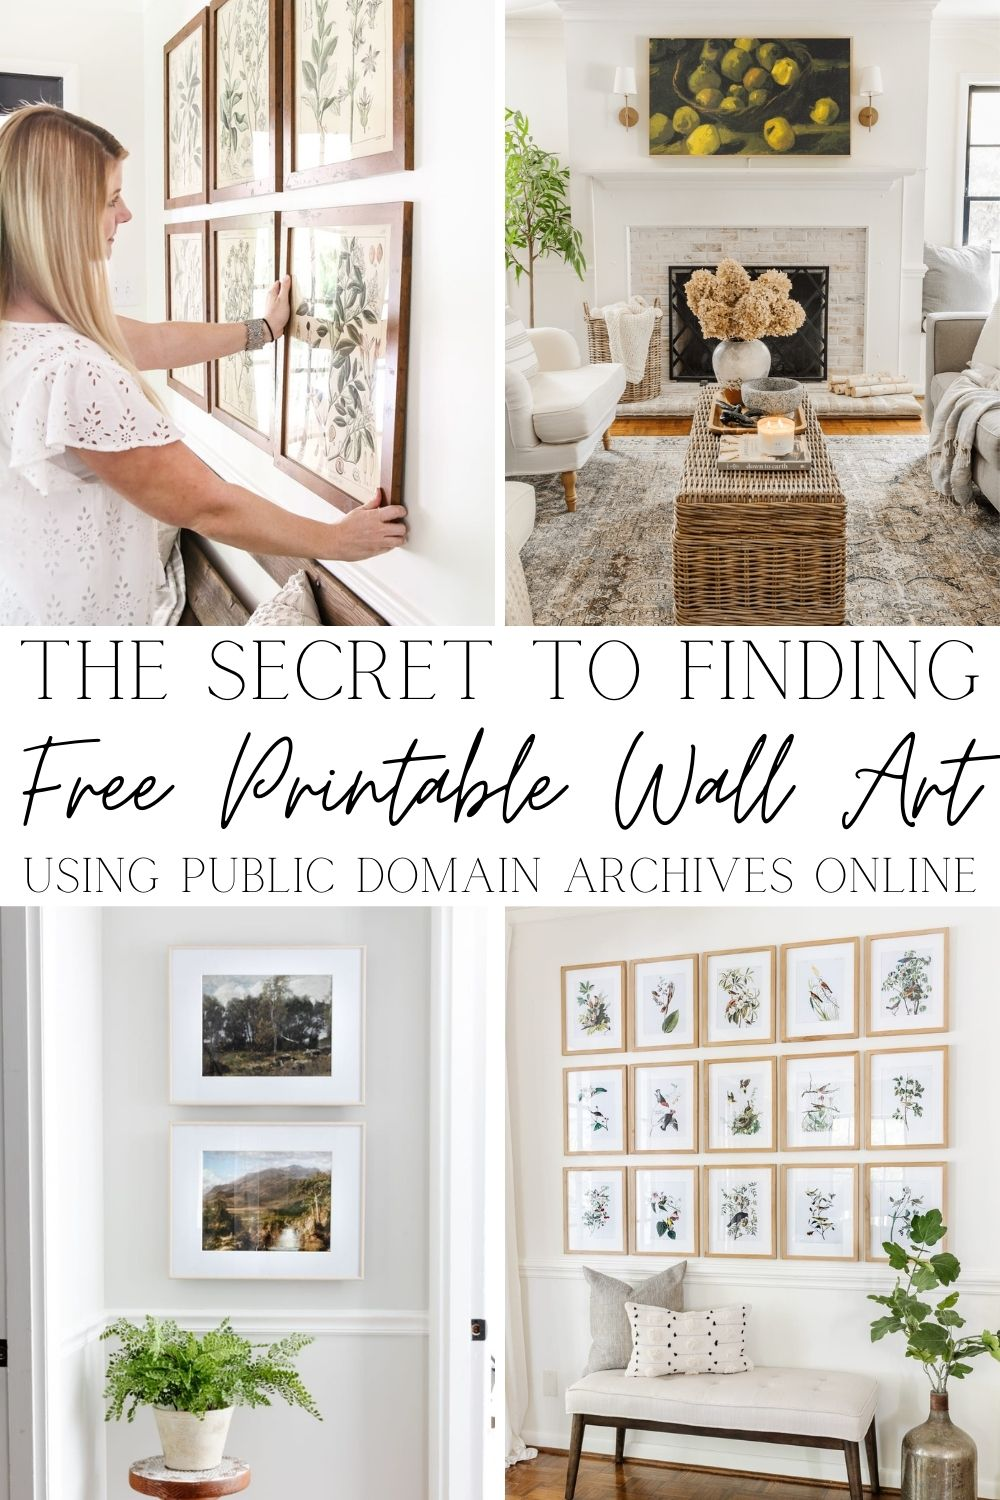 The Secret to Finding Free Printable Wall Art Using Public Domain Archives Online